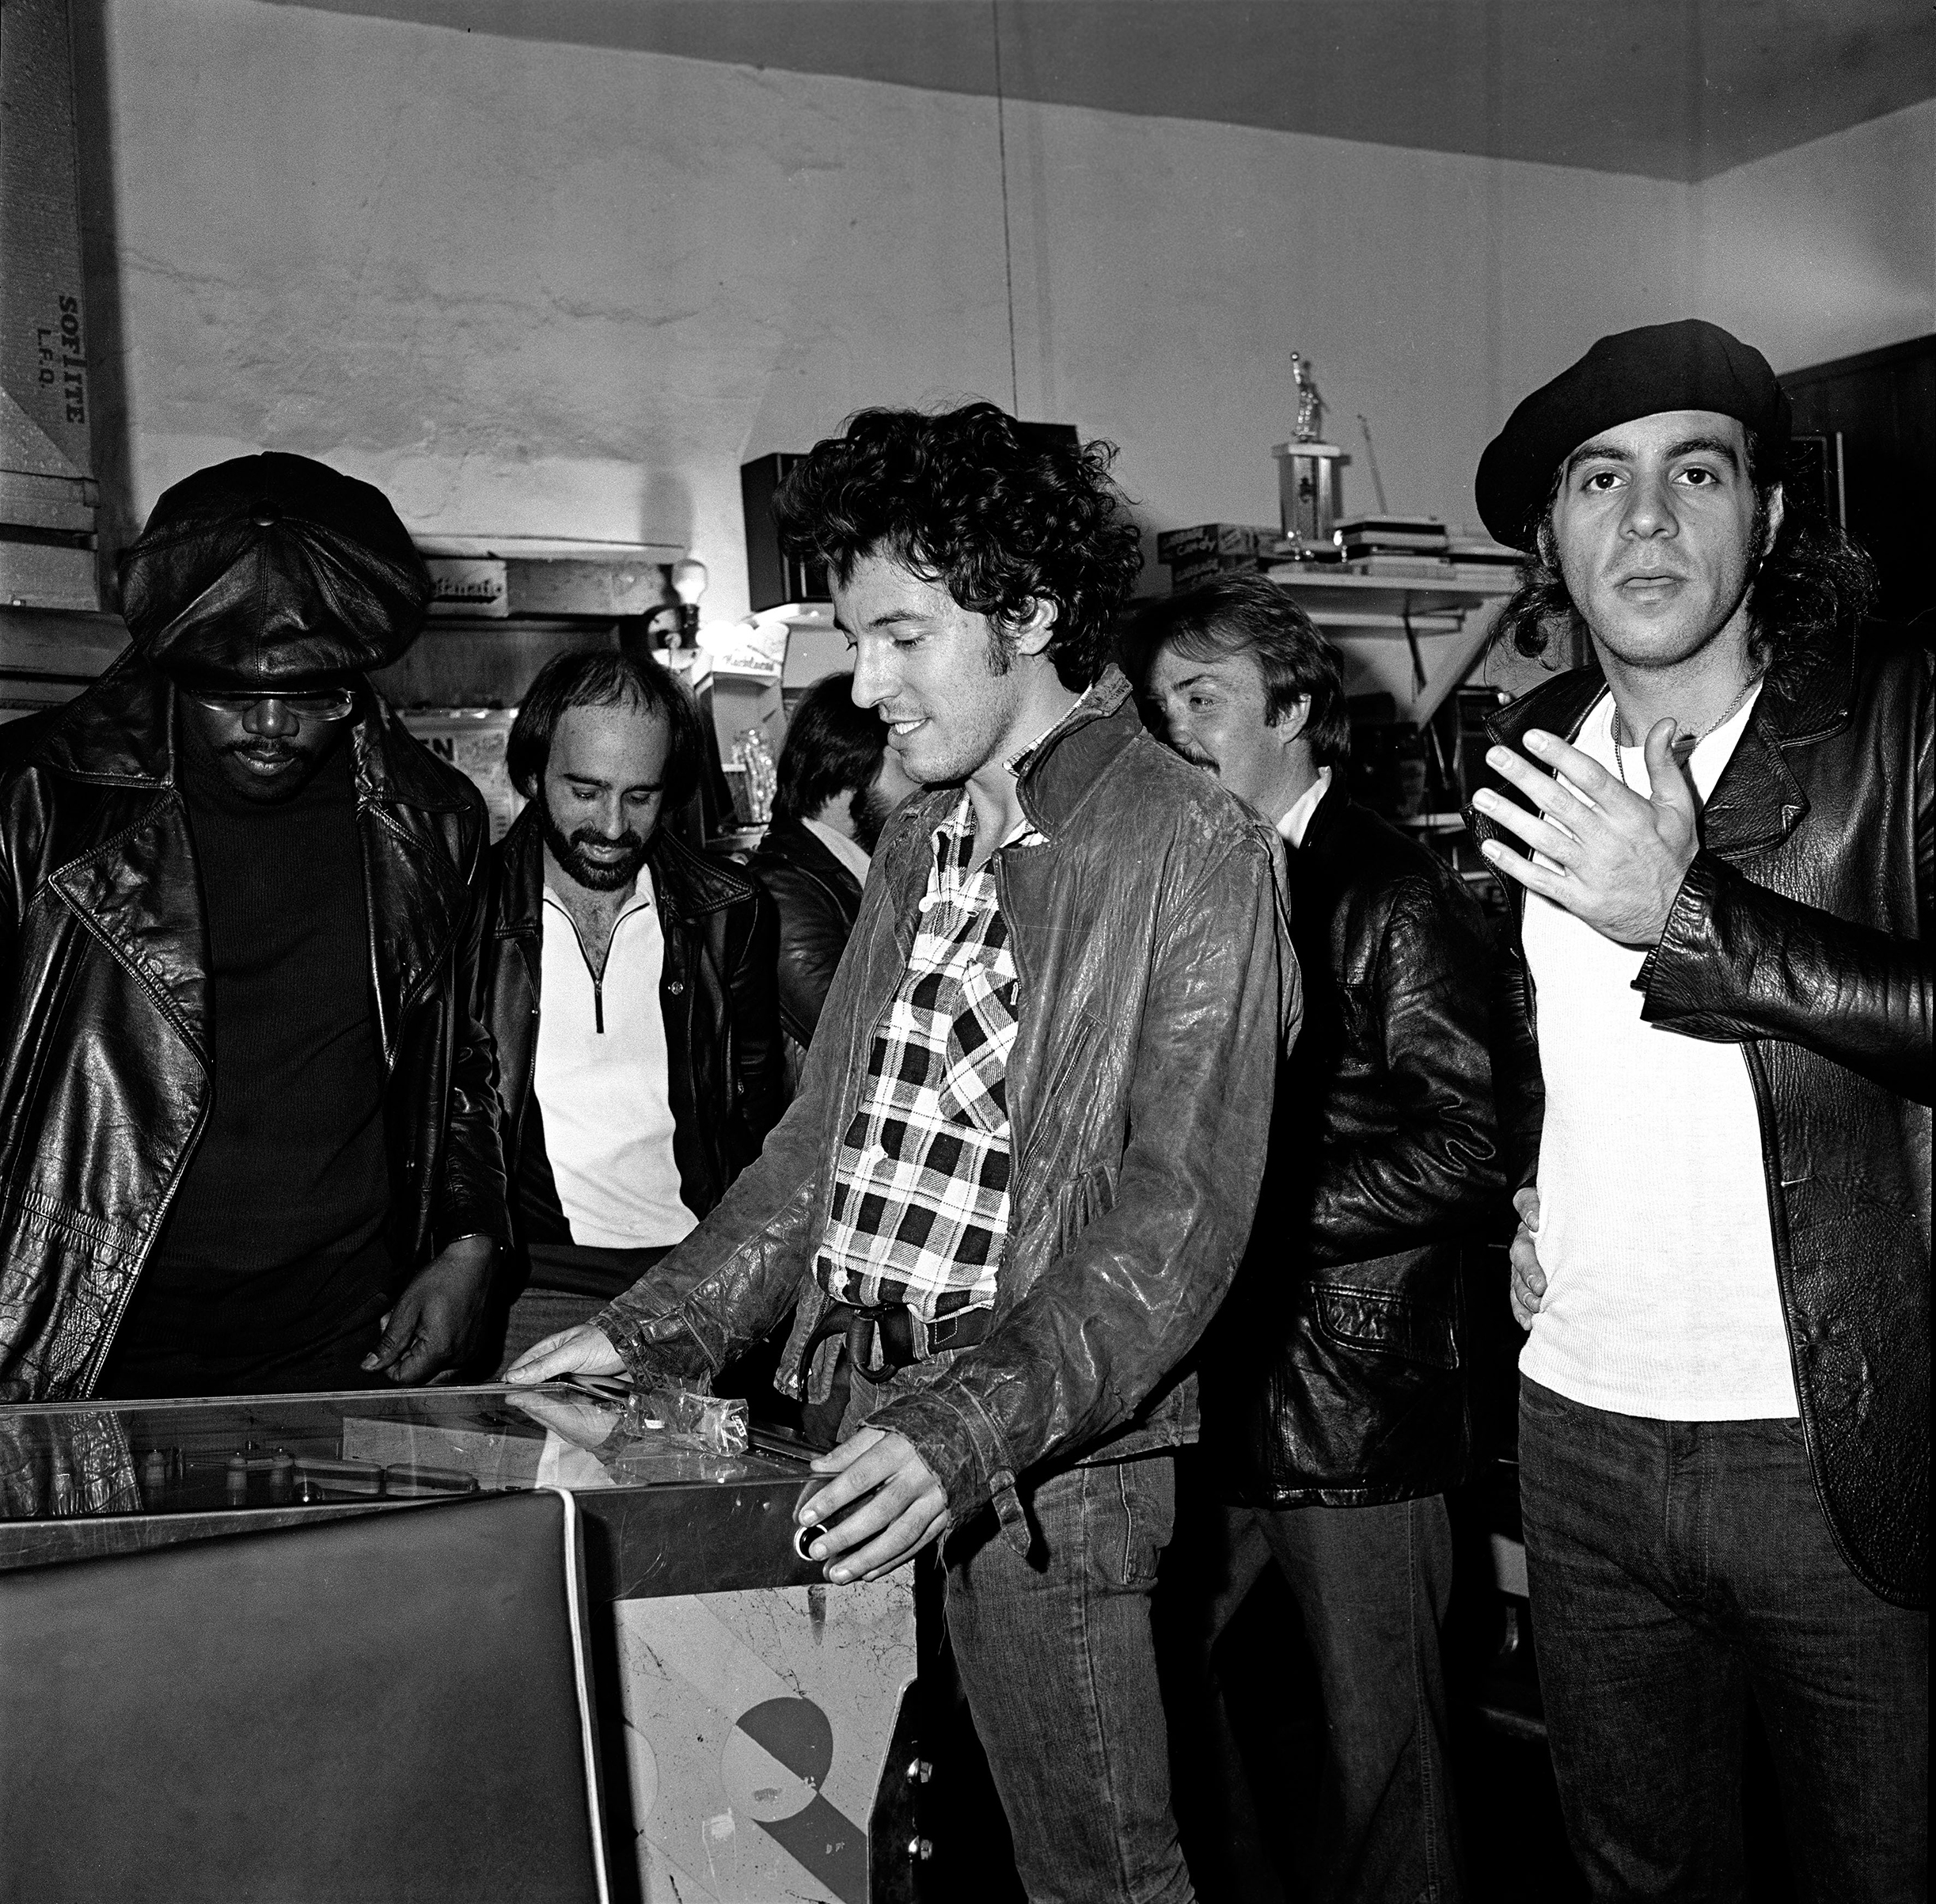 Bruce Springsteen and the E Street band playing pinball at Shellow's Luncheonette, East Camden,                               NJ, 1978.